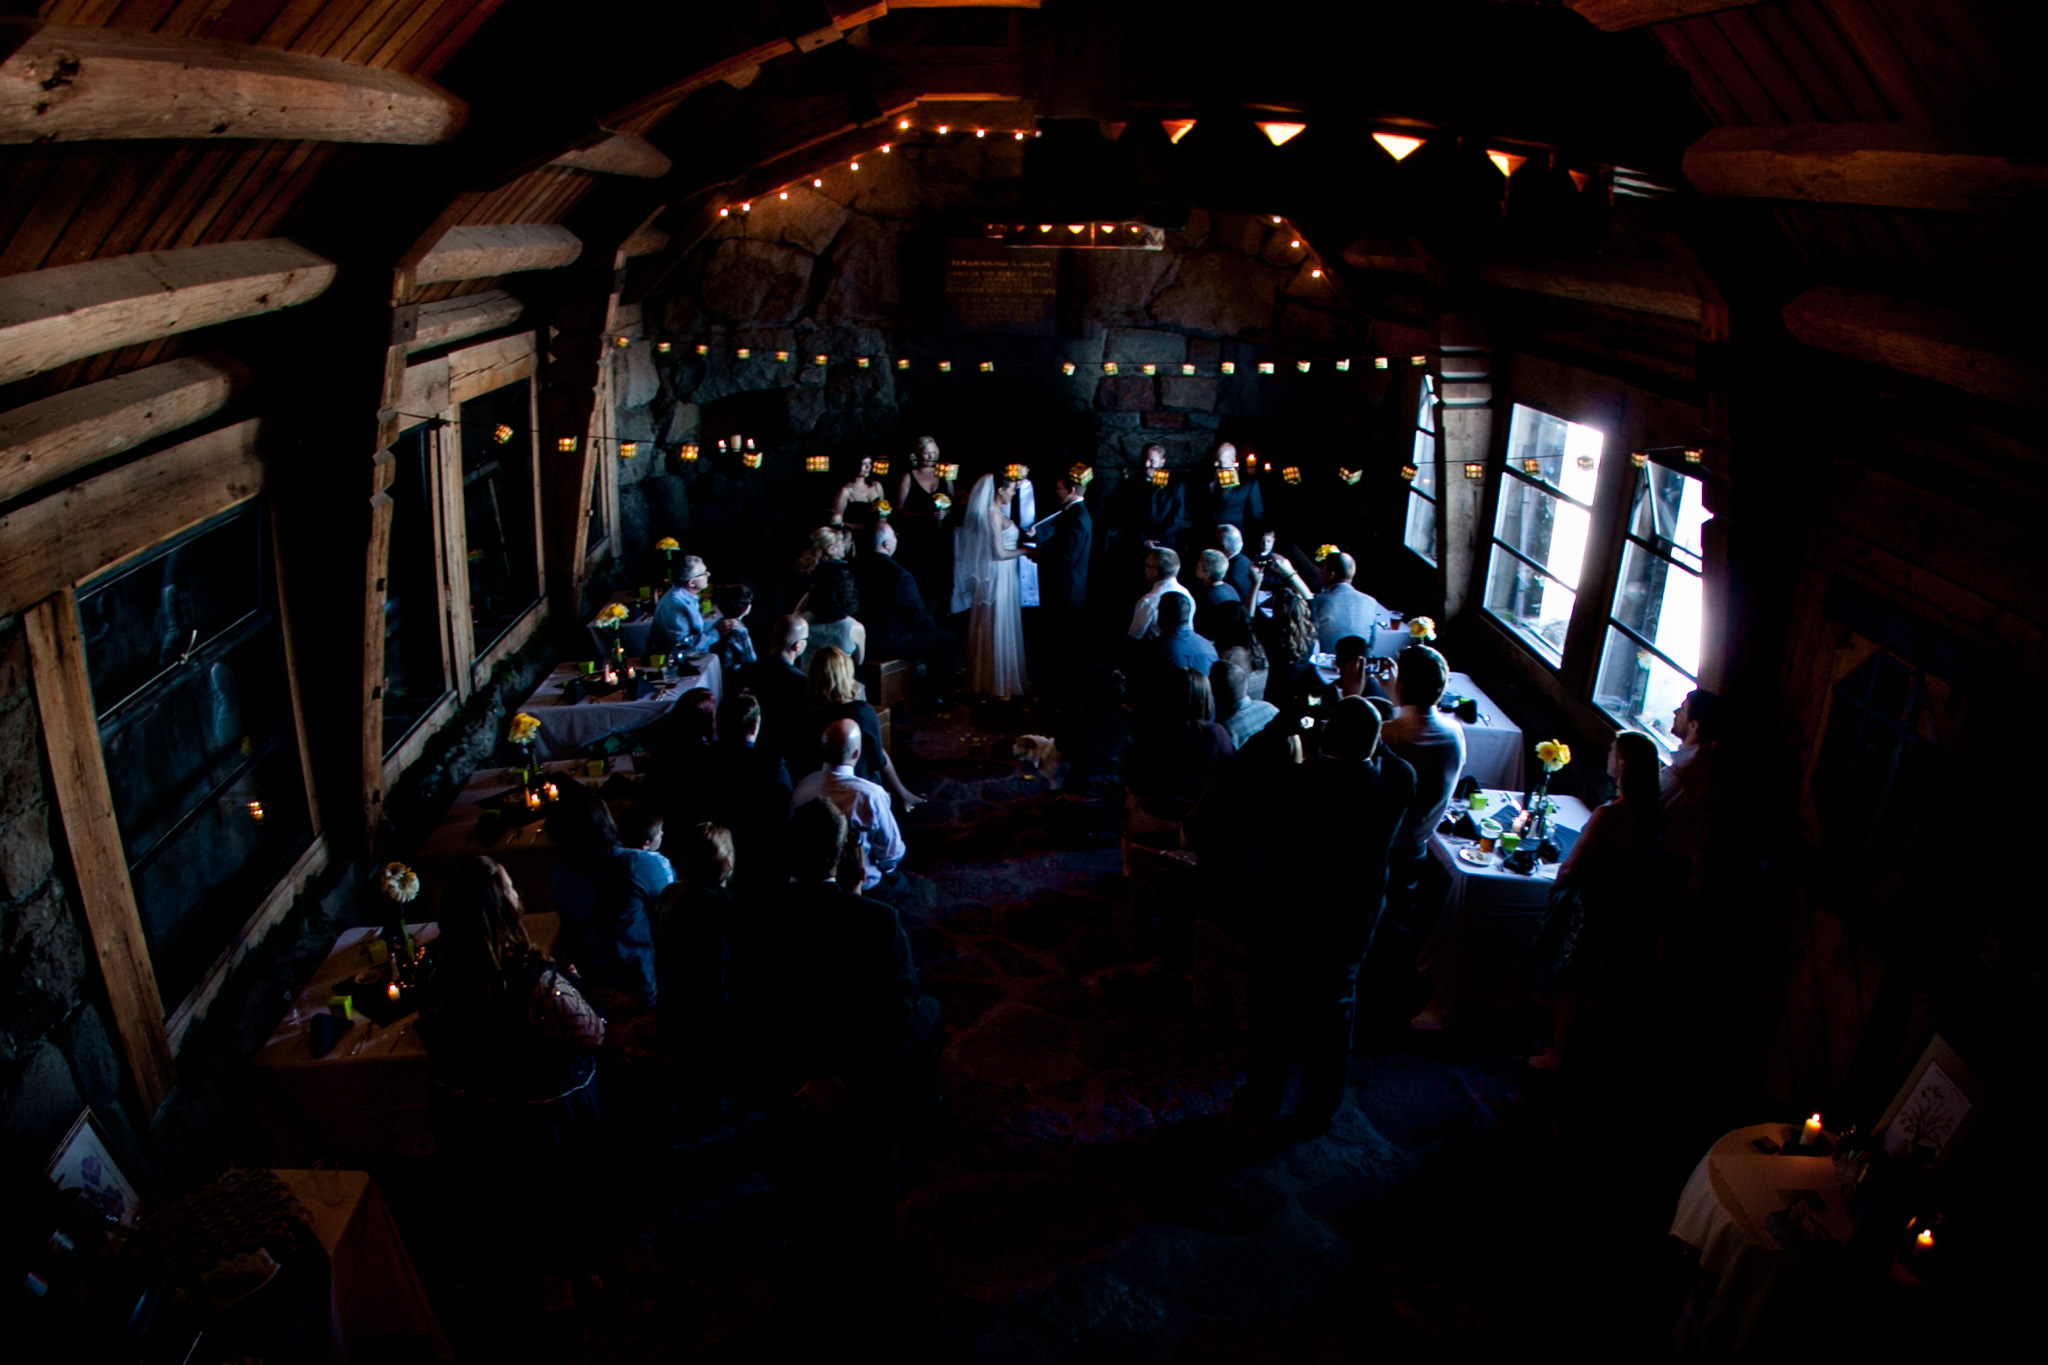 Bride and Groom in intimate wedding ceremony inside Silcox Hut atop Mt Hood at Timberline Lodge